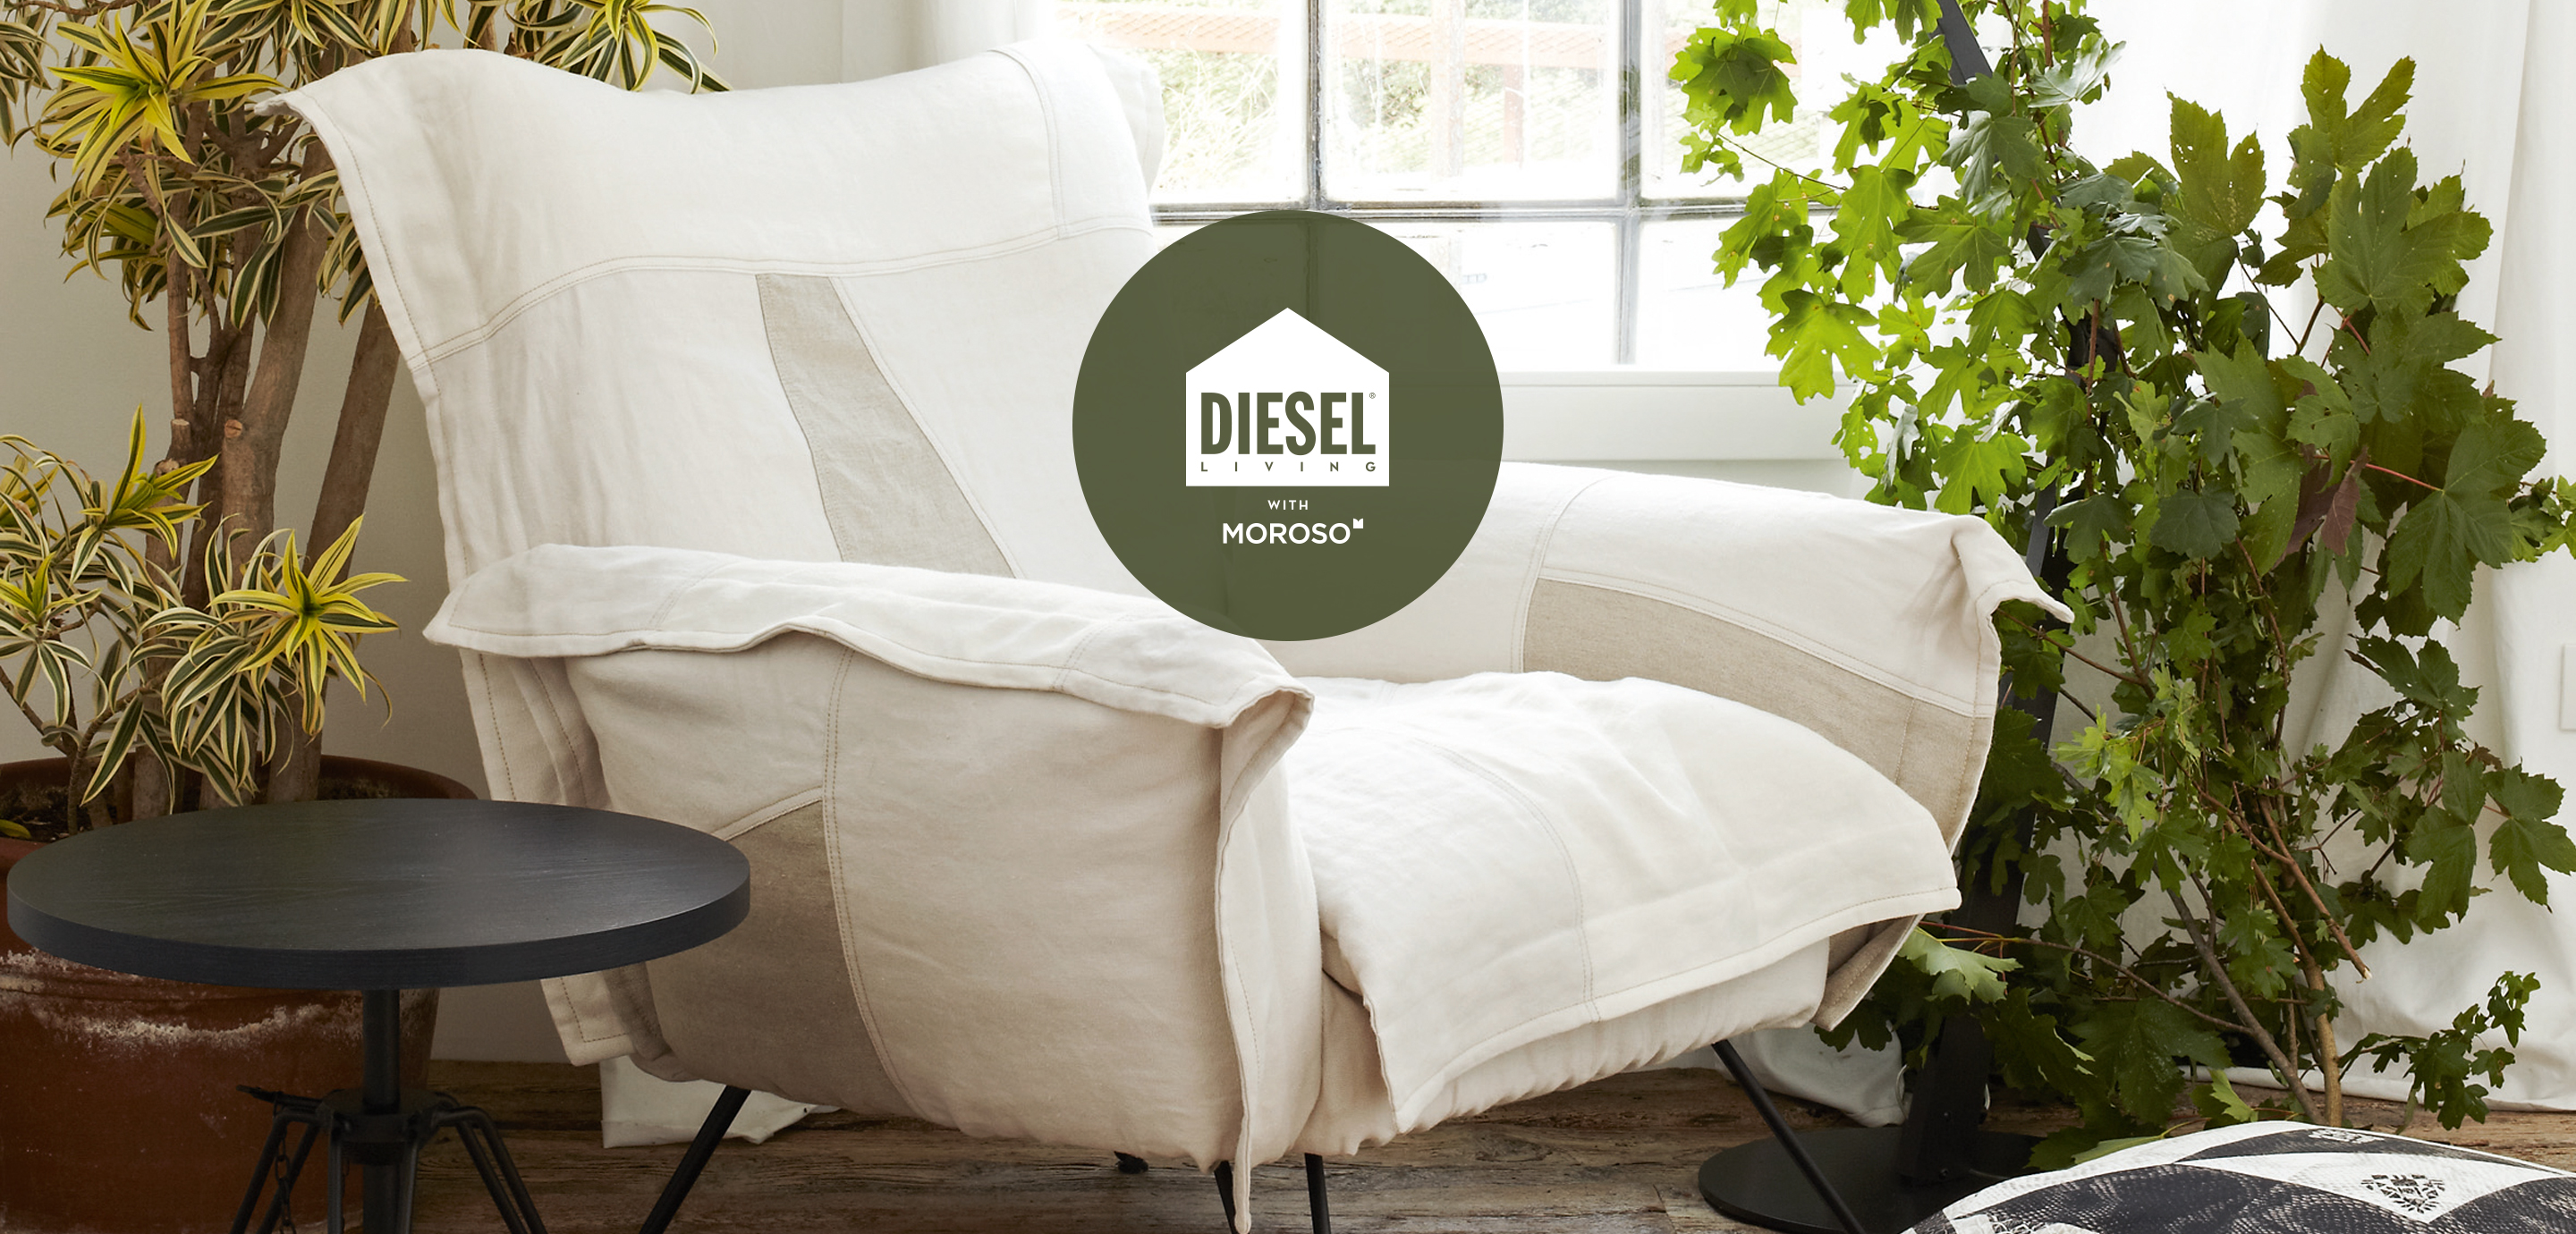 Diesel Living with Moroso